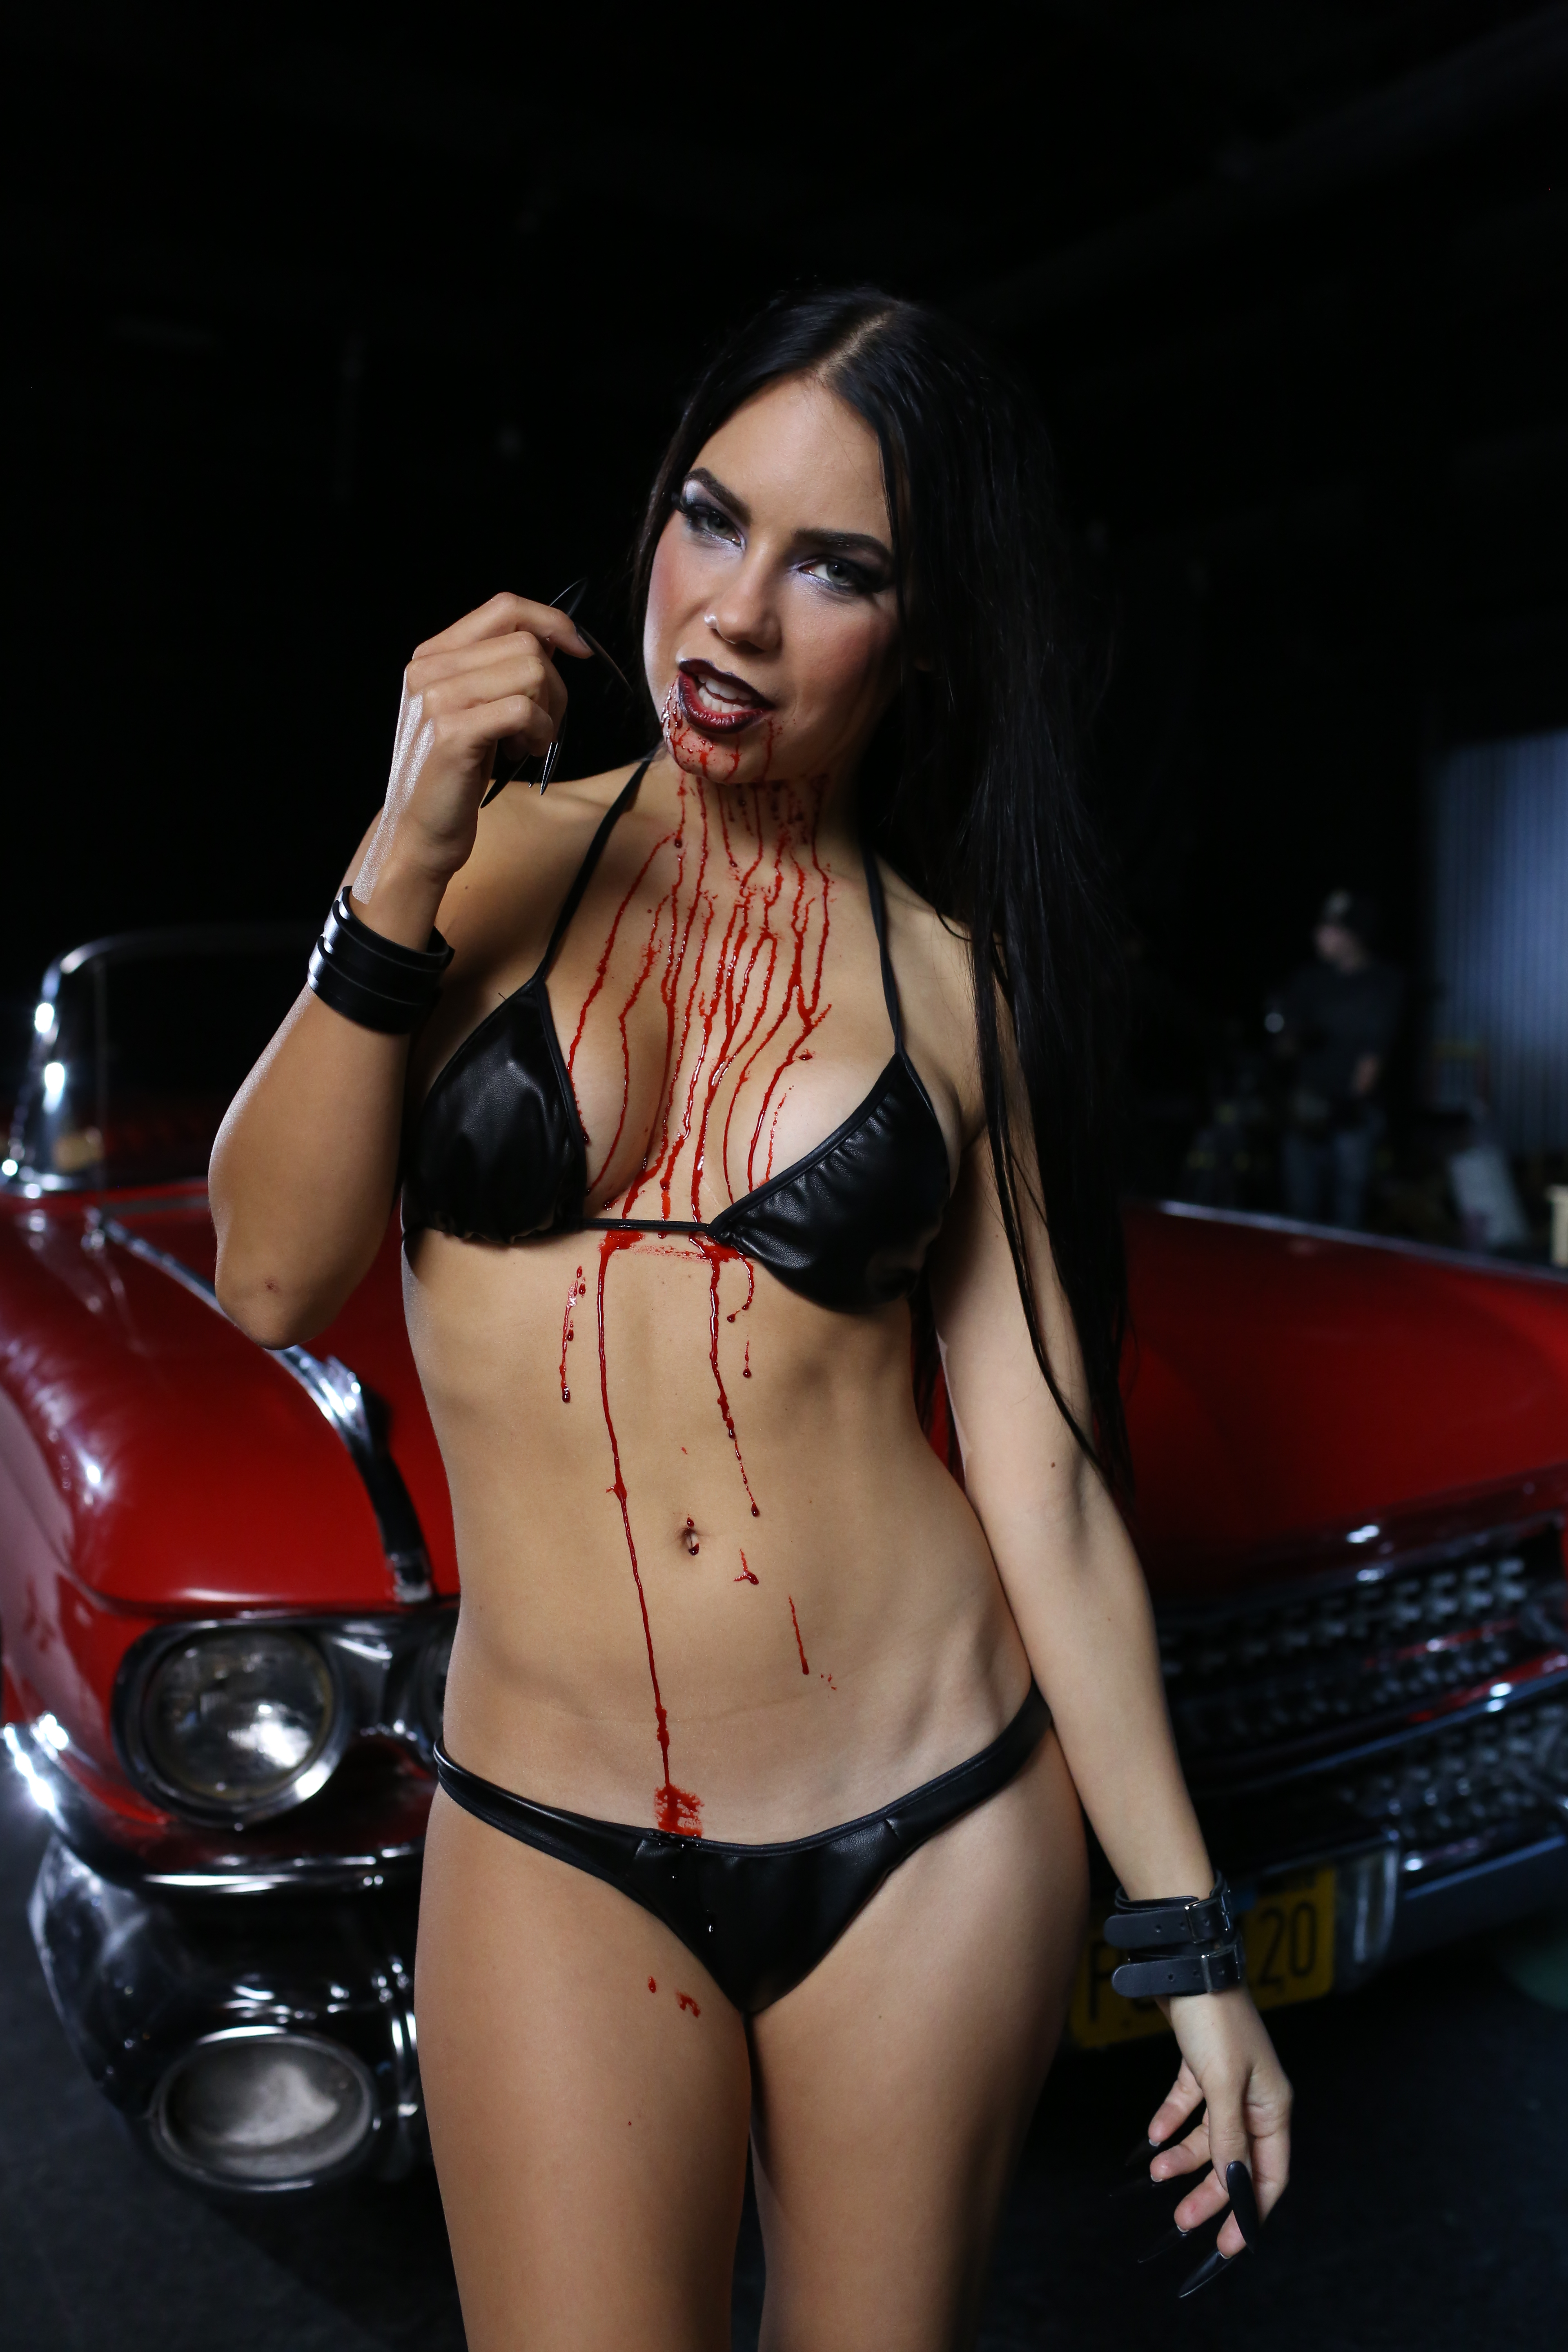 image Vampiric dinner date with anastasia mayo Part 3